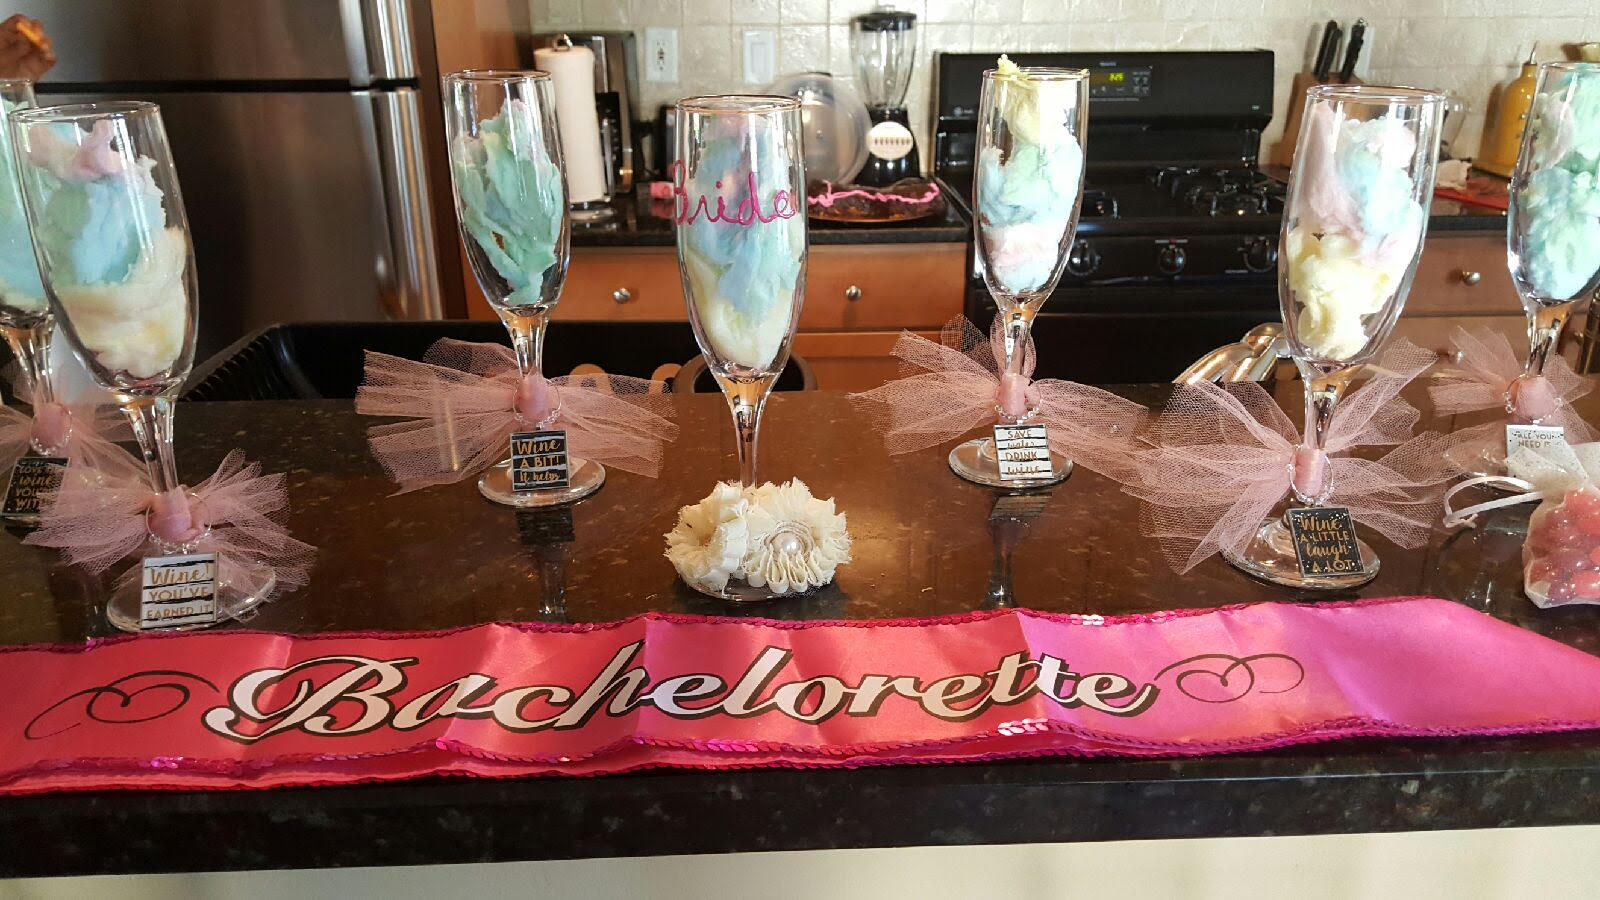 Bachlorette Party - Atlanta